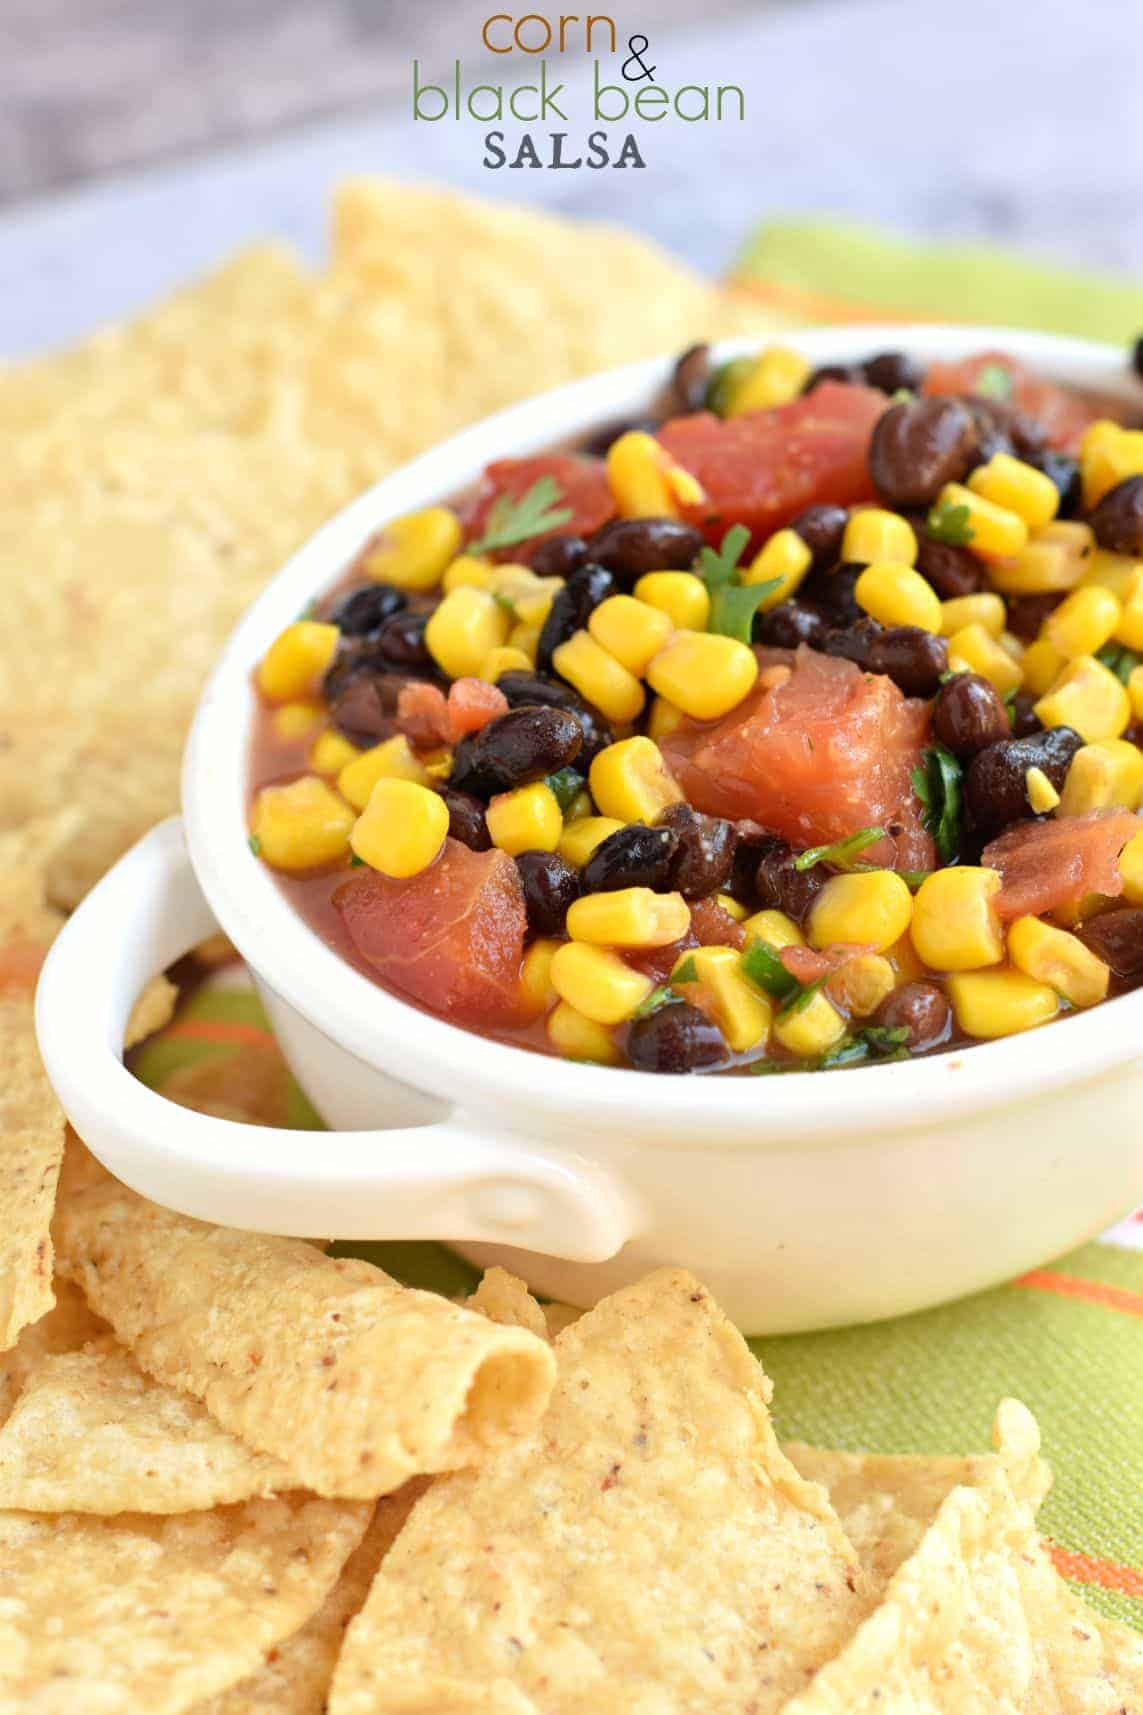 ... salsa when you can make this delicious Corn and Black Bean Salsa at